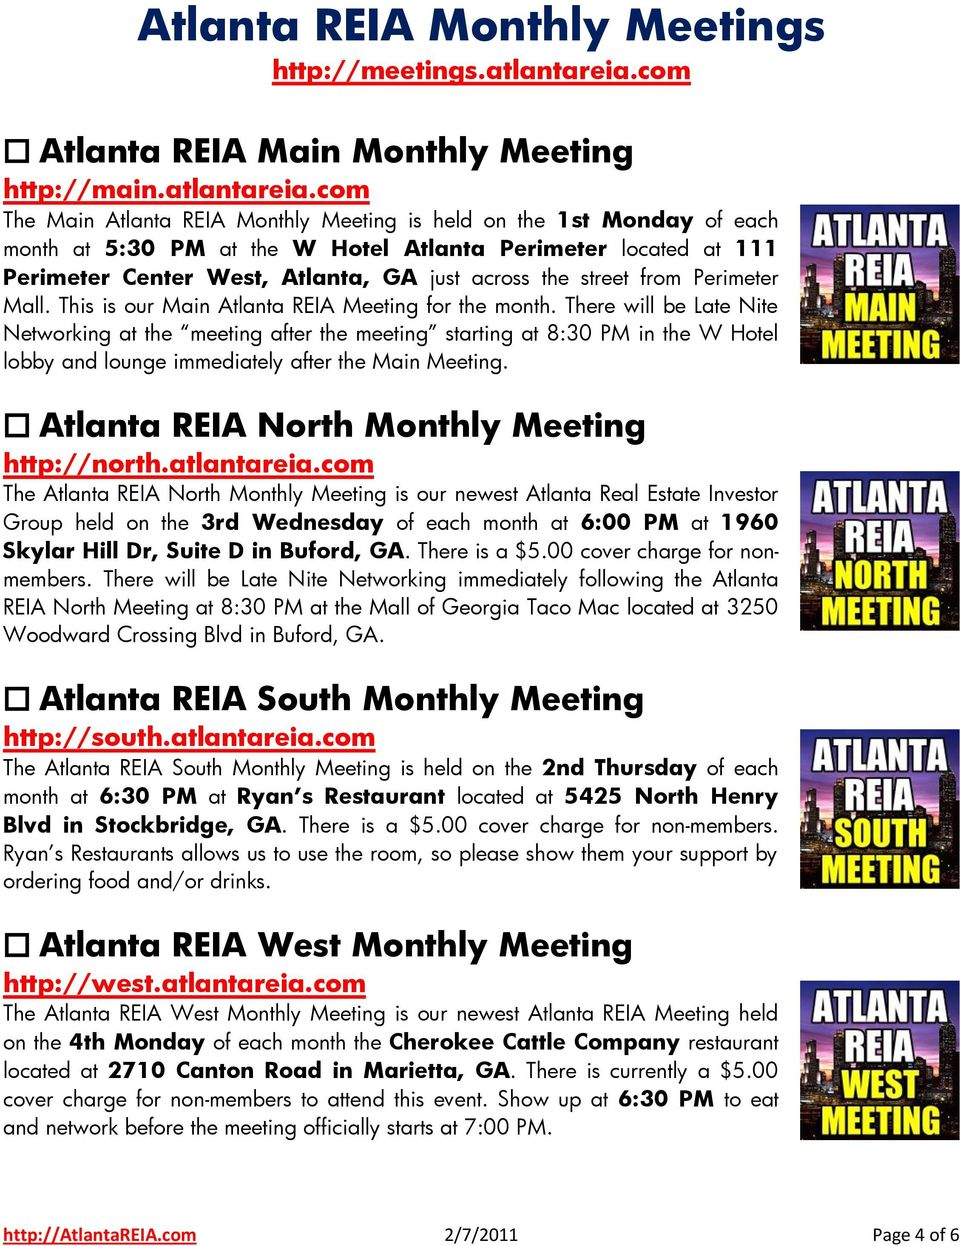 com The Main Atlanta REIA Monthly Meeting is held on the 1st Monday of each month at 5:30 PM at the W Hotel Atlanta Perimeter located at 111 Perimeter Center West, Atlanta, GA just across the street